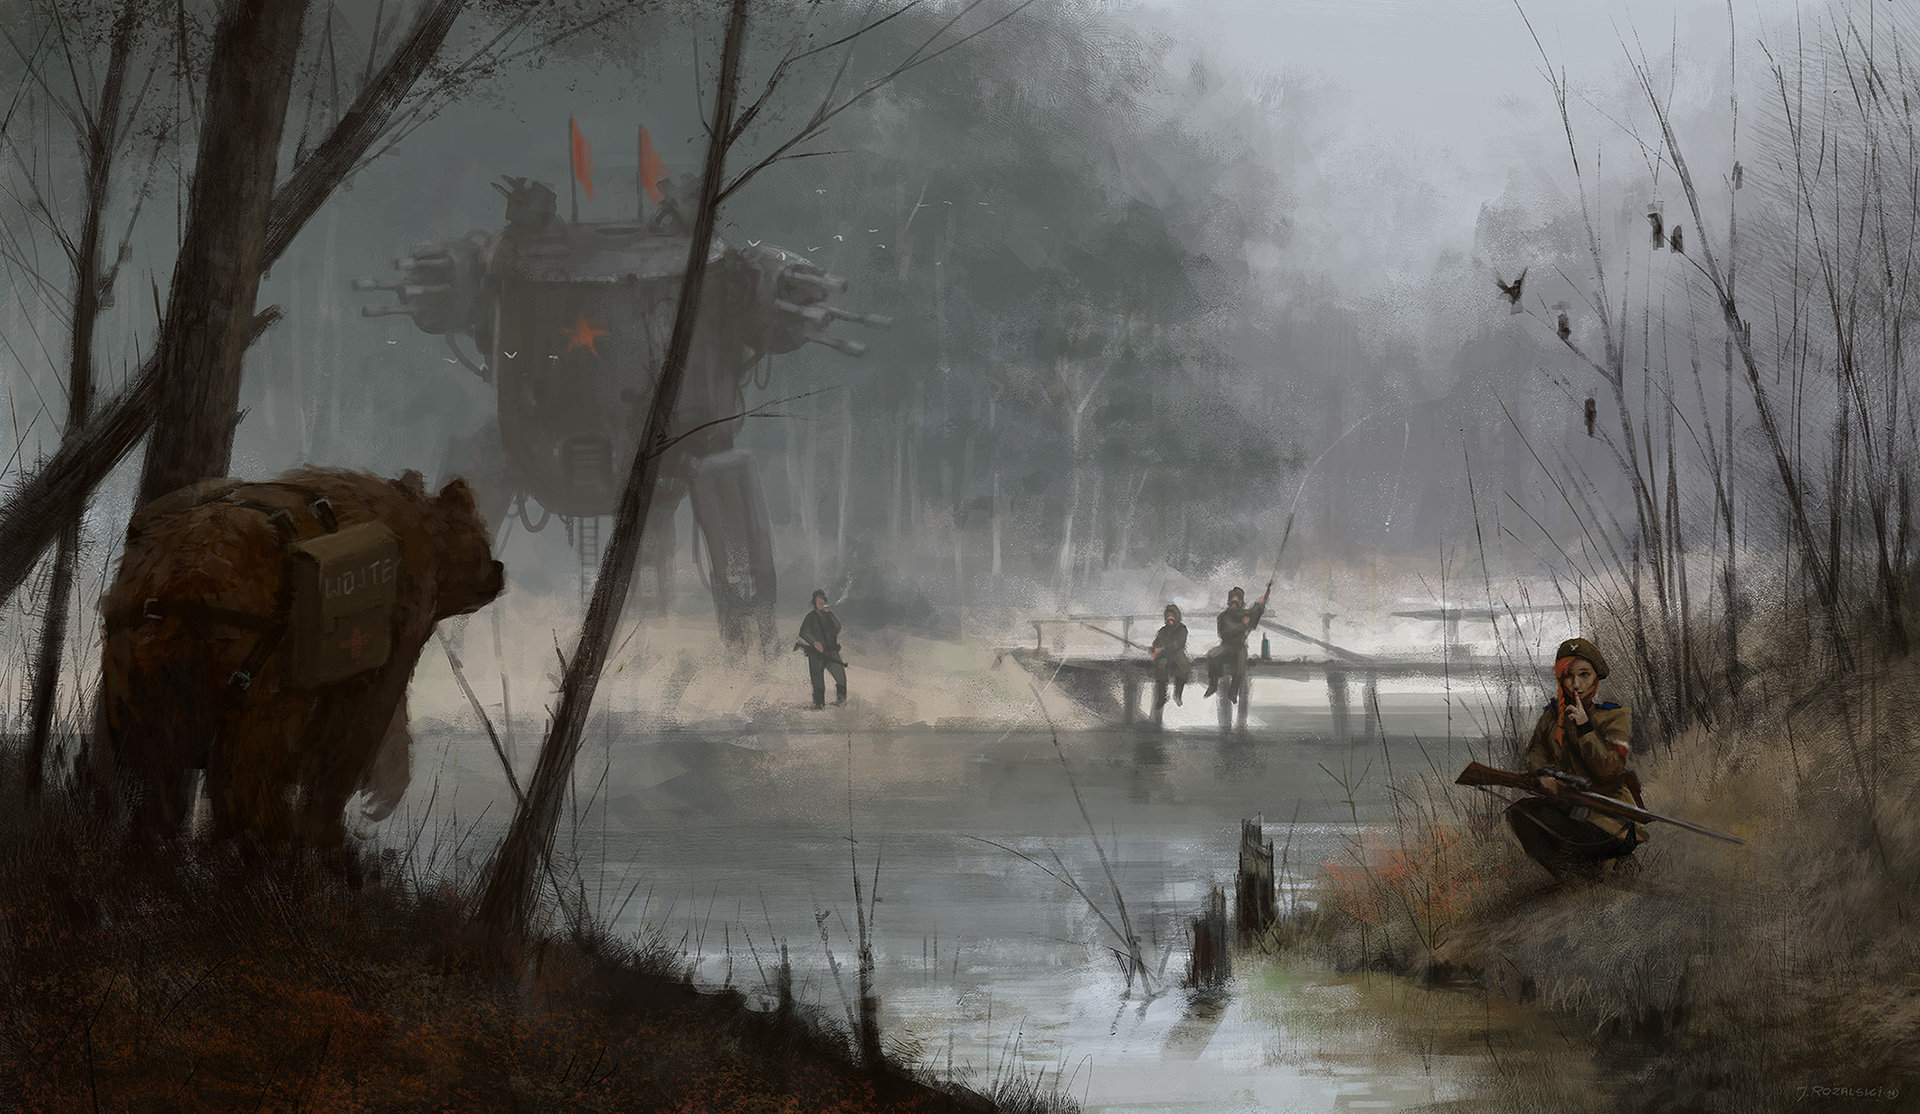 Jakub rozalski 1920 most1 small